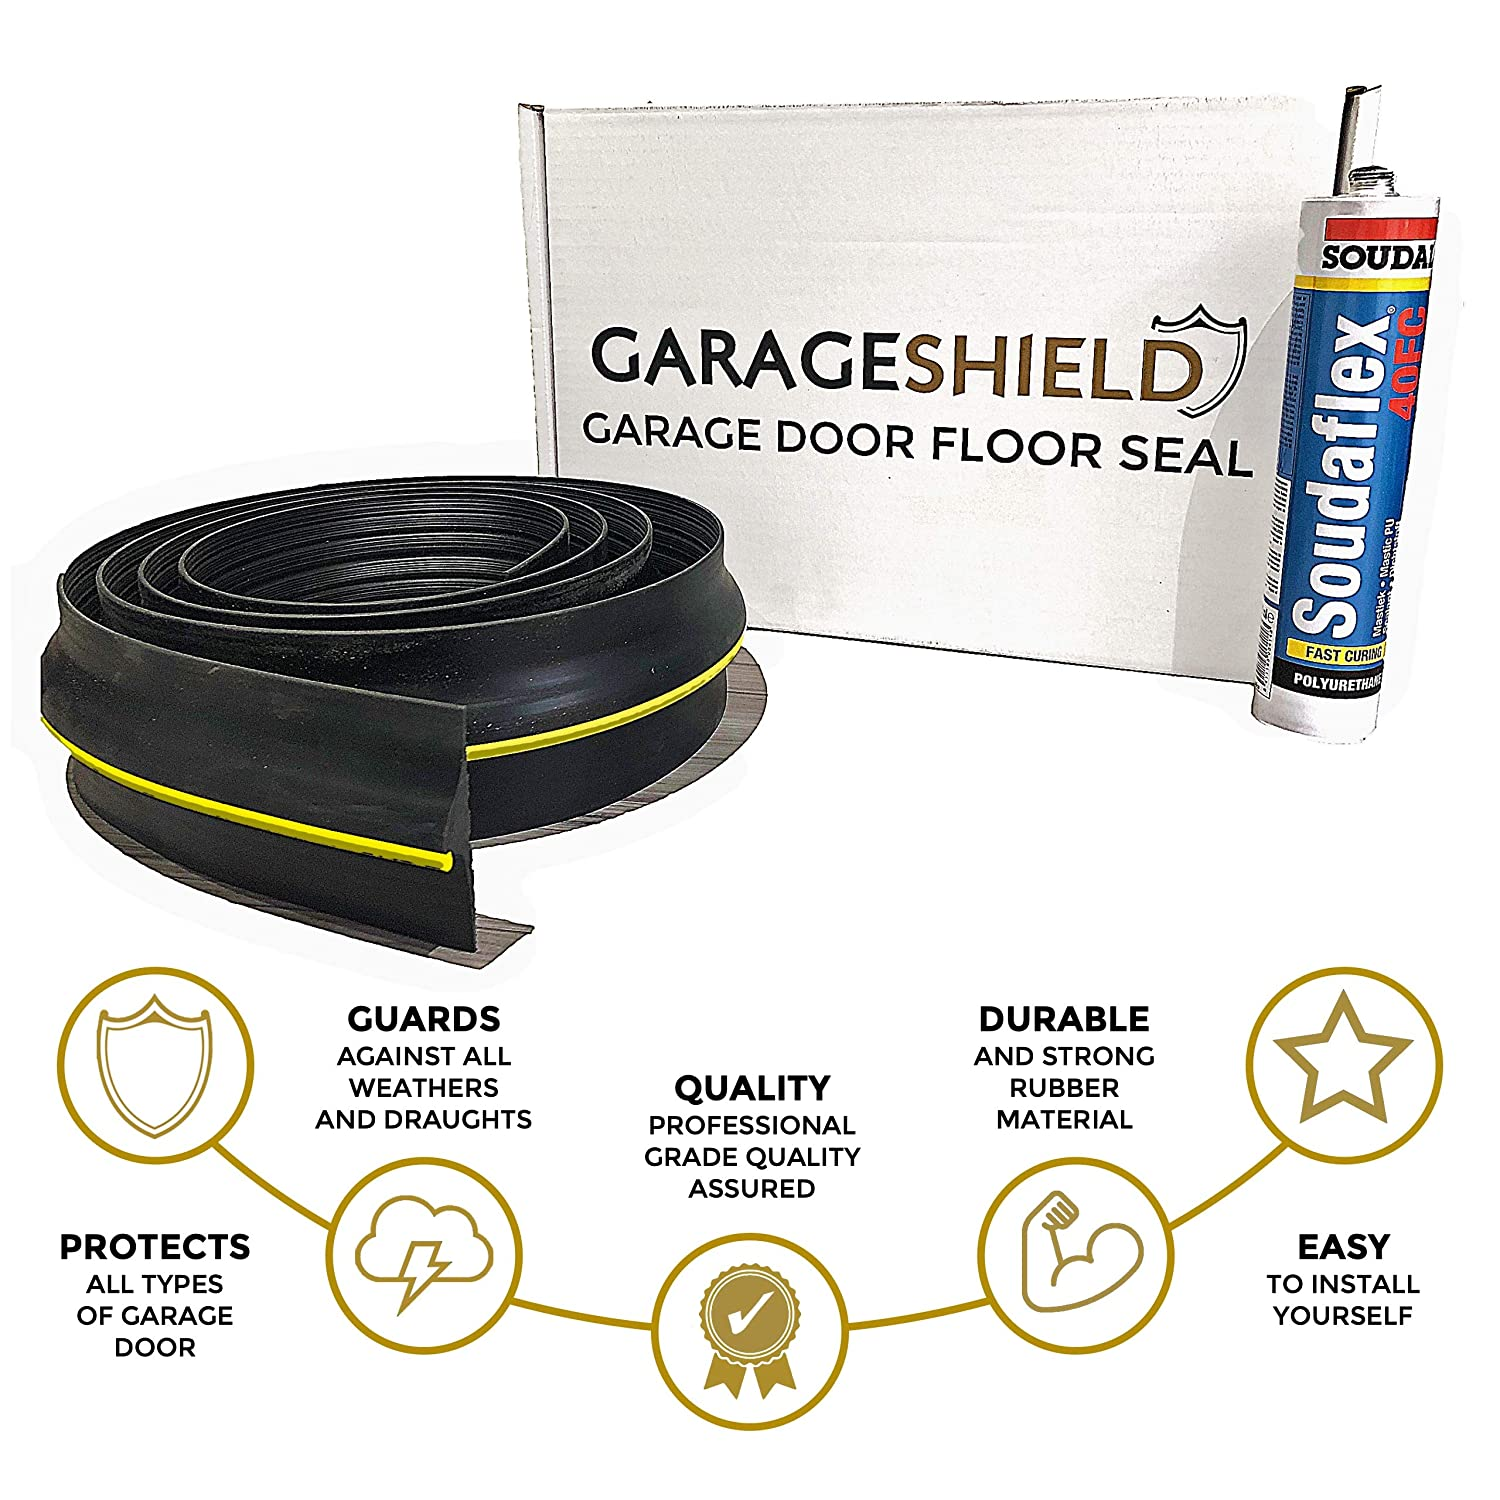 Garage Door Floor Threshold Weather Seal 2.5M Draught Excluder - Includes Free Sealant and Easy to Follow Installation Guide Wing&Co